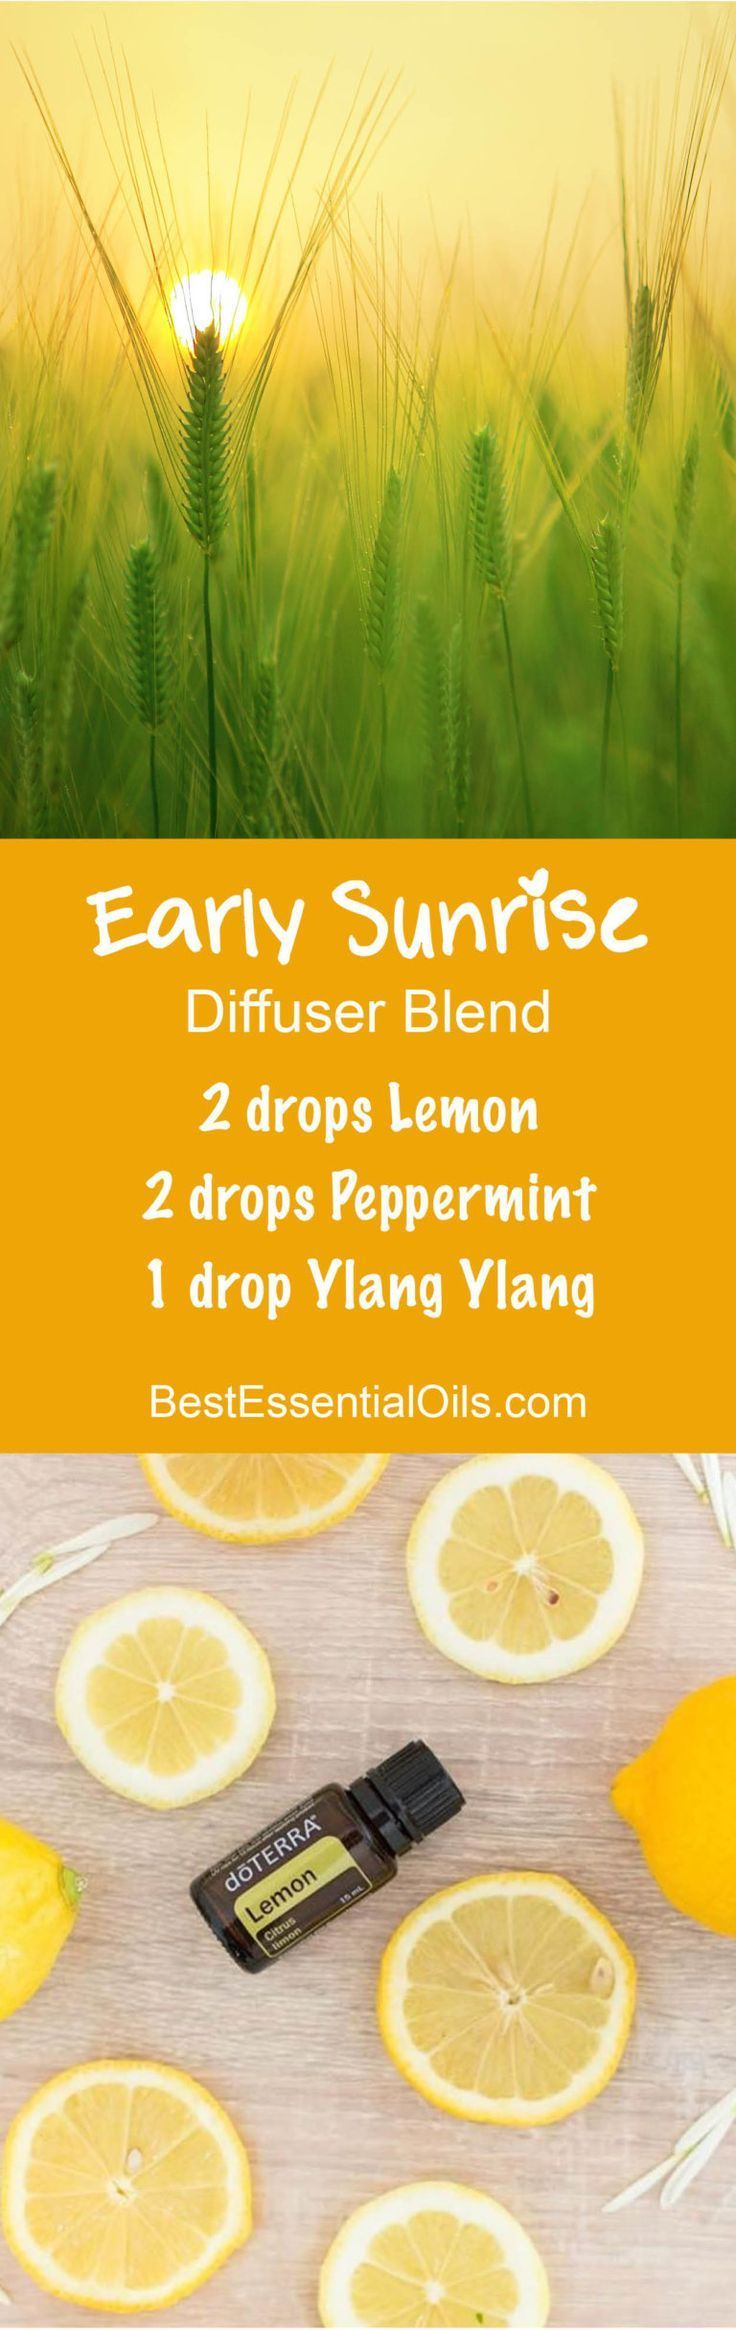 Early Sunrise Essential Oils Diffuser Blend ••• Buy dōTERRA essential oils online at www.mydoterra.com/suzysholar, or contact me suzy.sholar@gmail.com for more info.